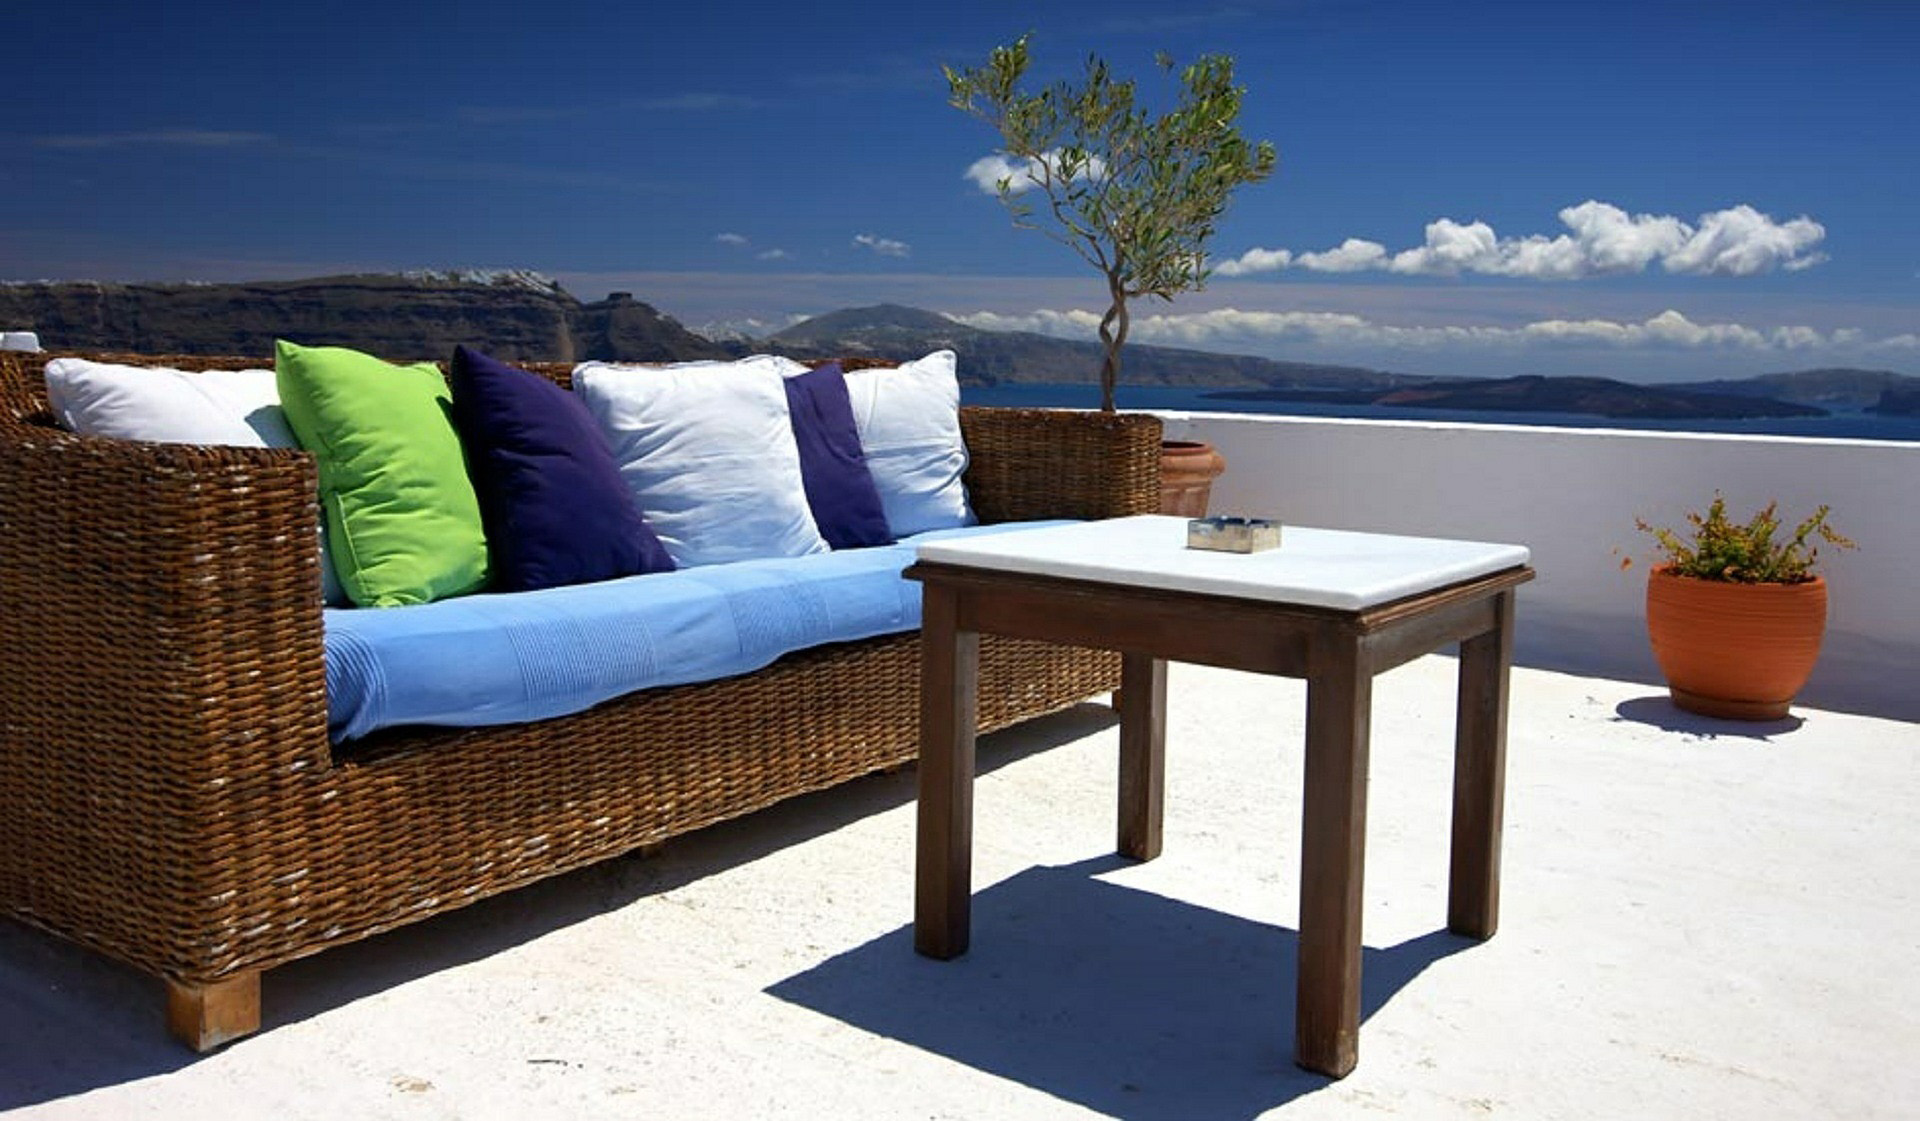 patio furniture, Photography, real estate sales. Home Staging, Real Estate Photography